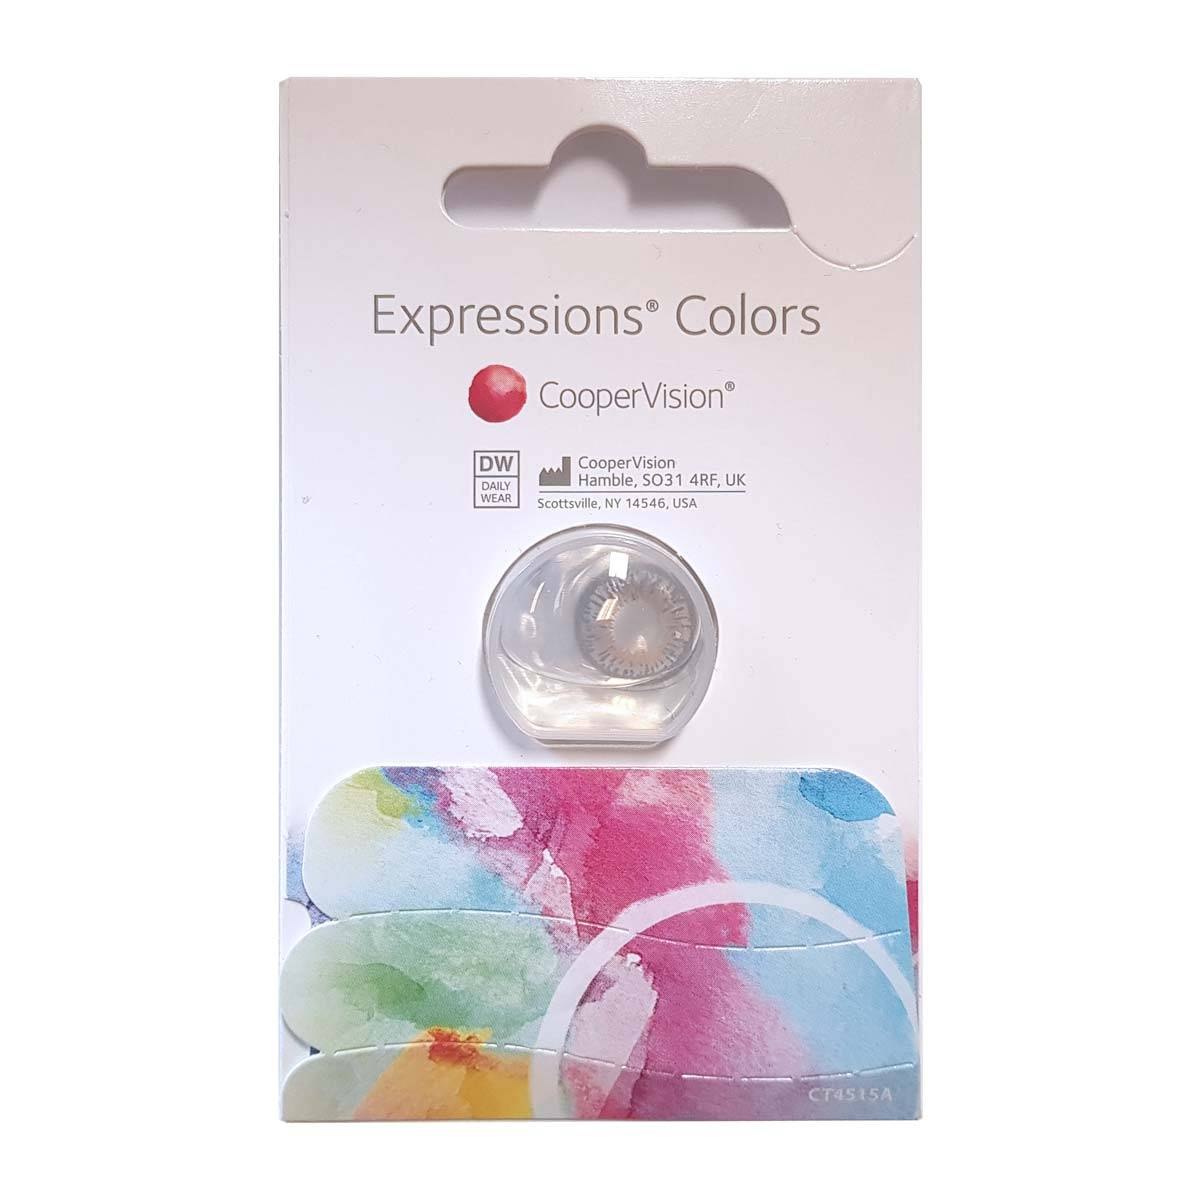 CooperVision Expressions Colour (1 contact lens), CooperVision, Monthly Coloured Lens, Methafilcon A